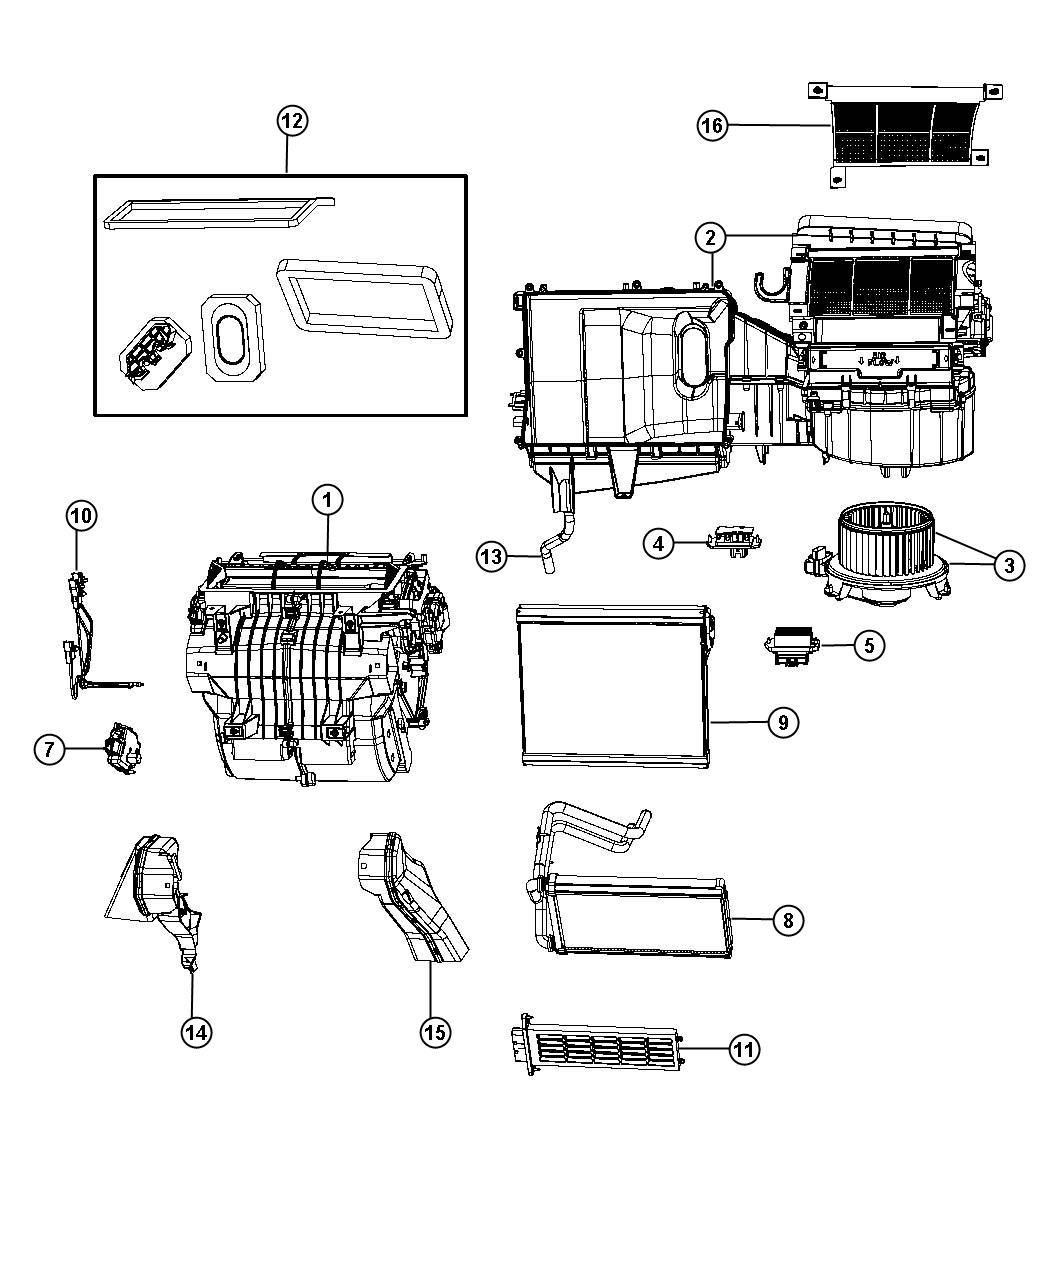 08 dodge avenger heater wiring diagram  08  free engine image for user manual download